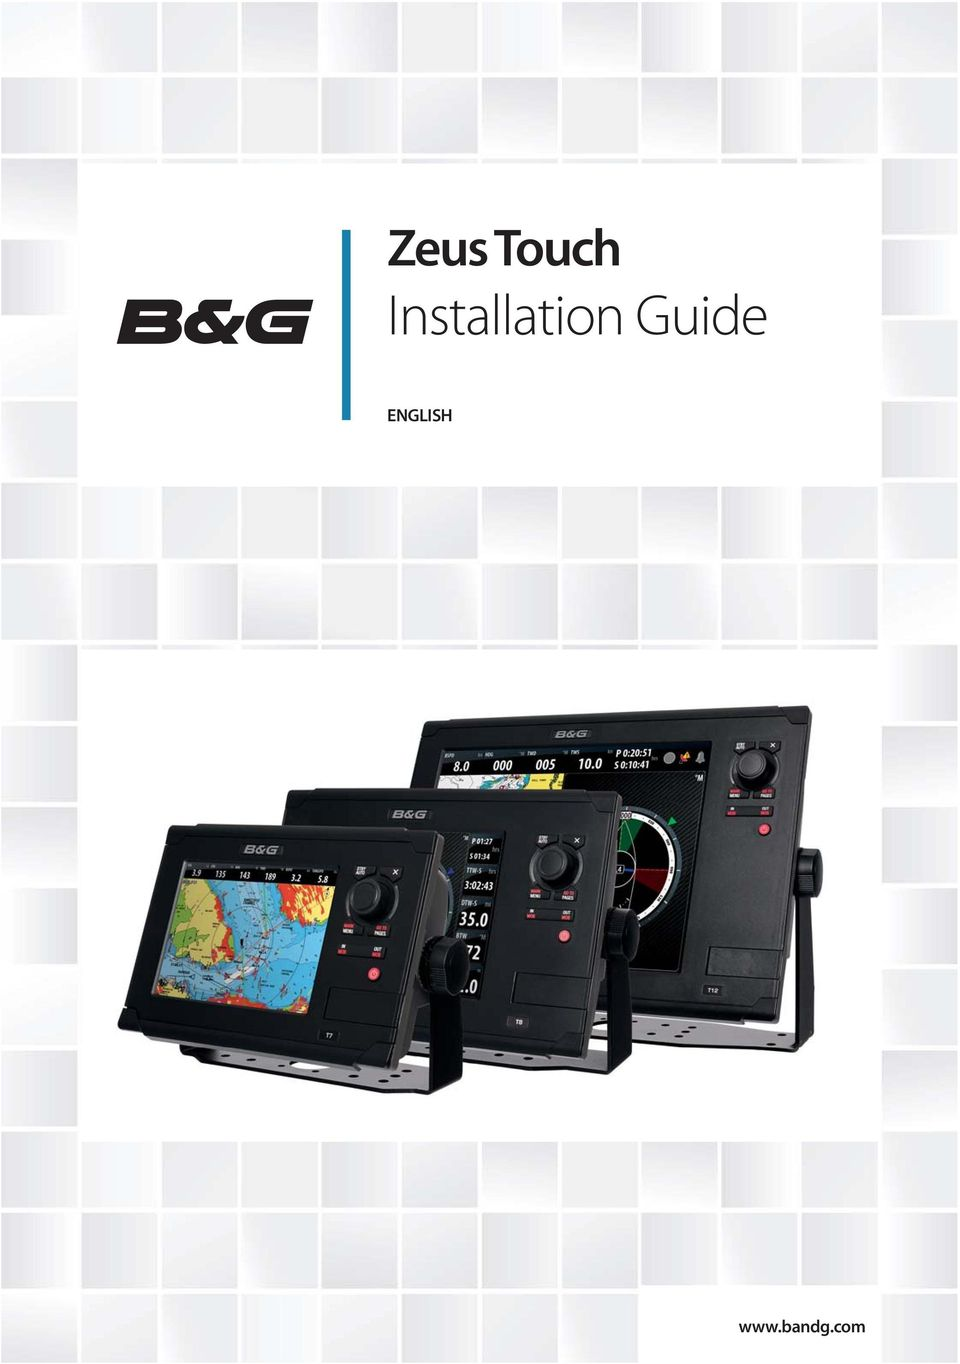 Zeus touch installation guide english pdf guide fandeluxe Gallery